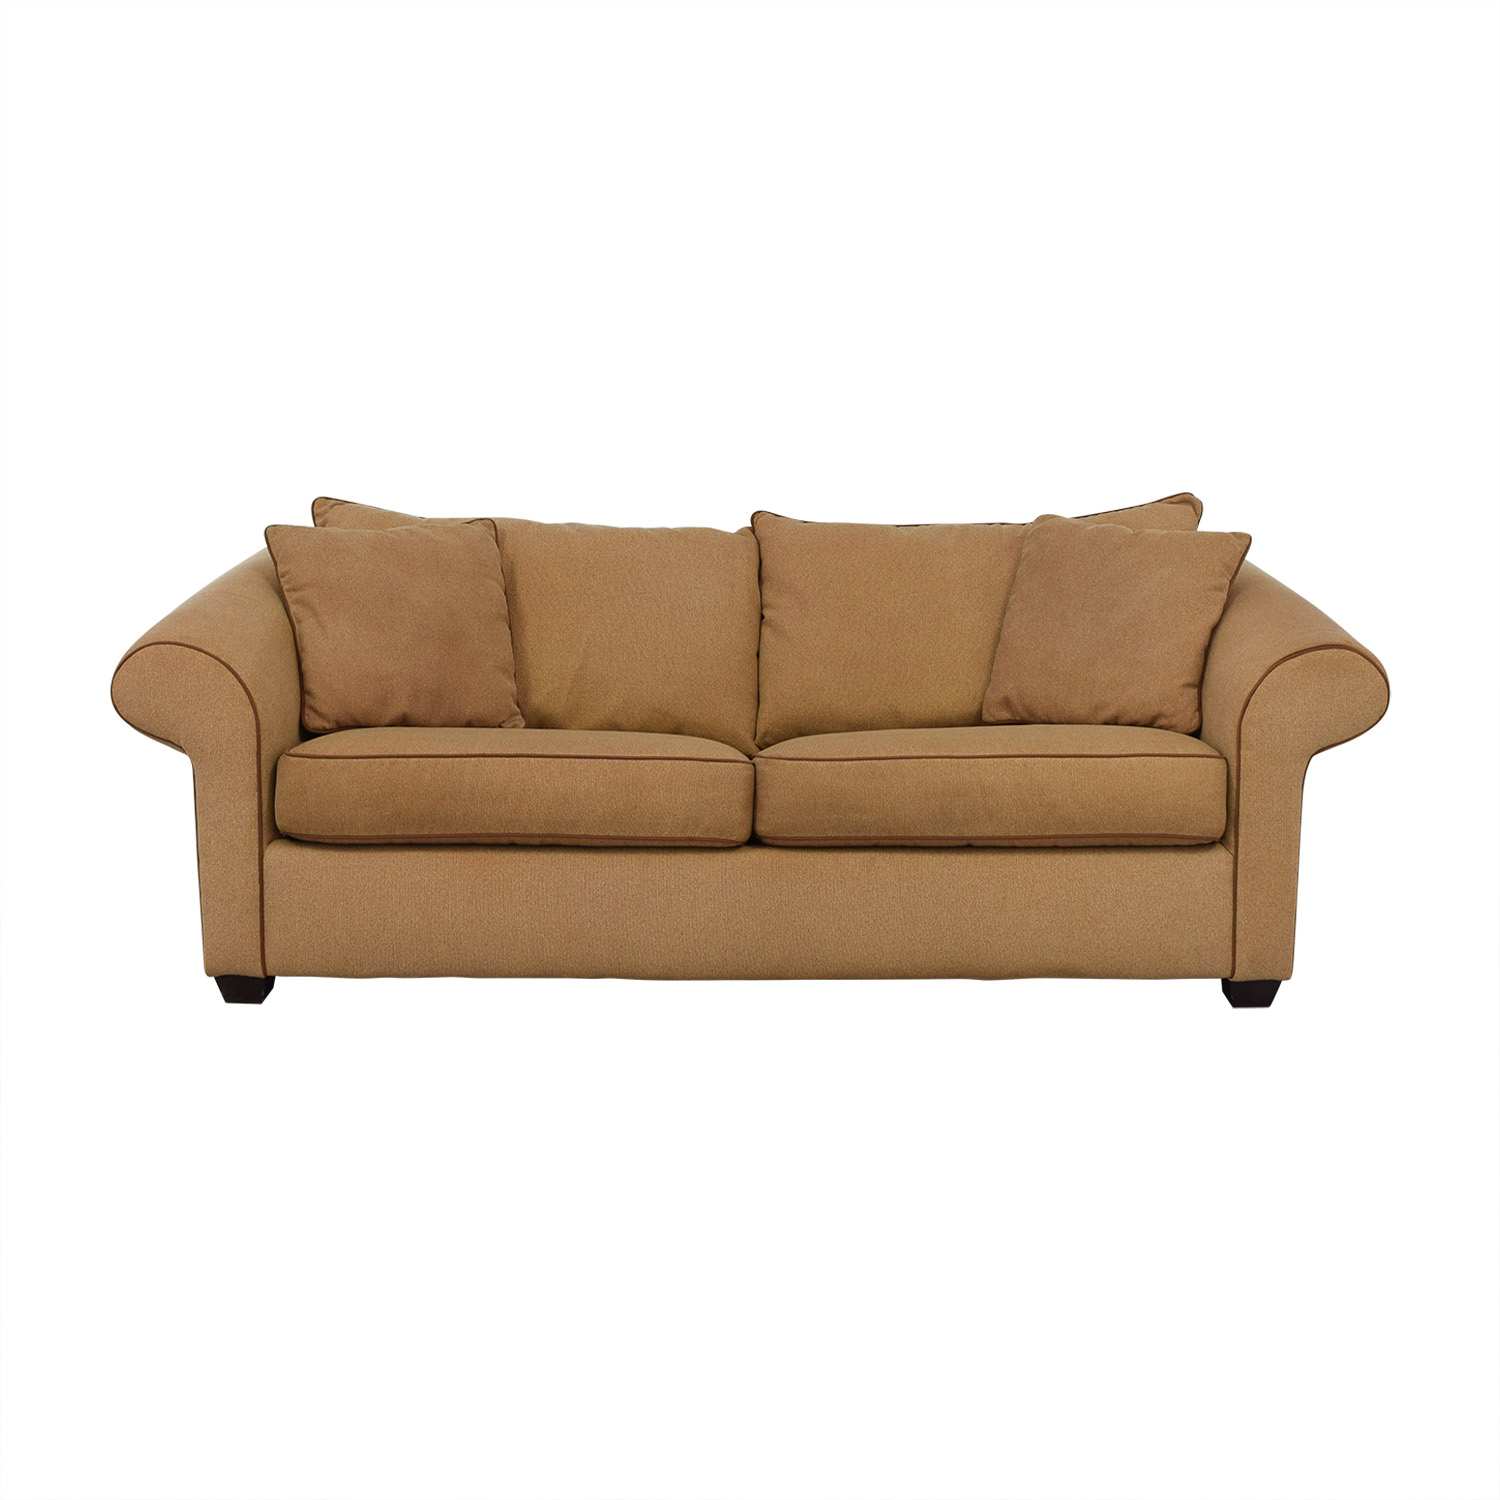 Storehouse Storehouse Sleeper Sofa nyc